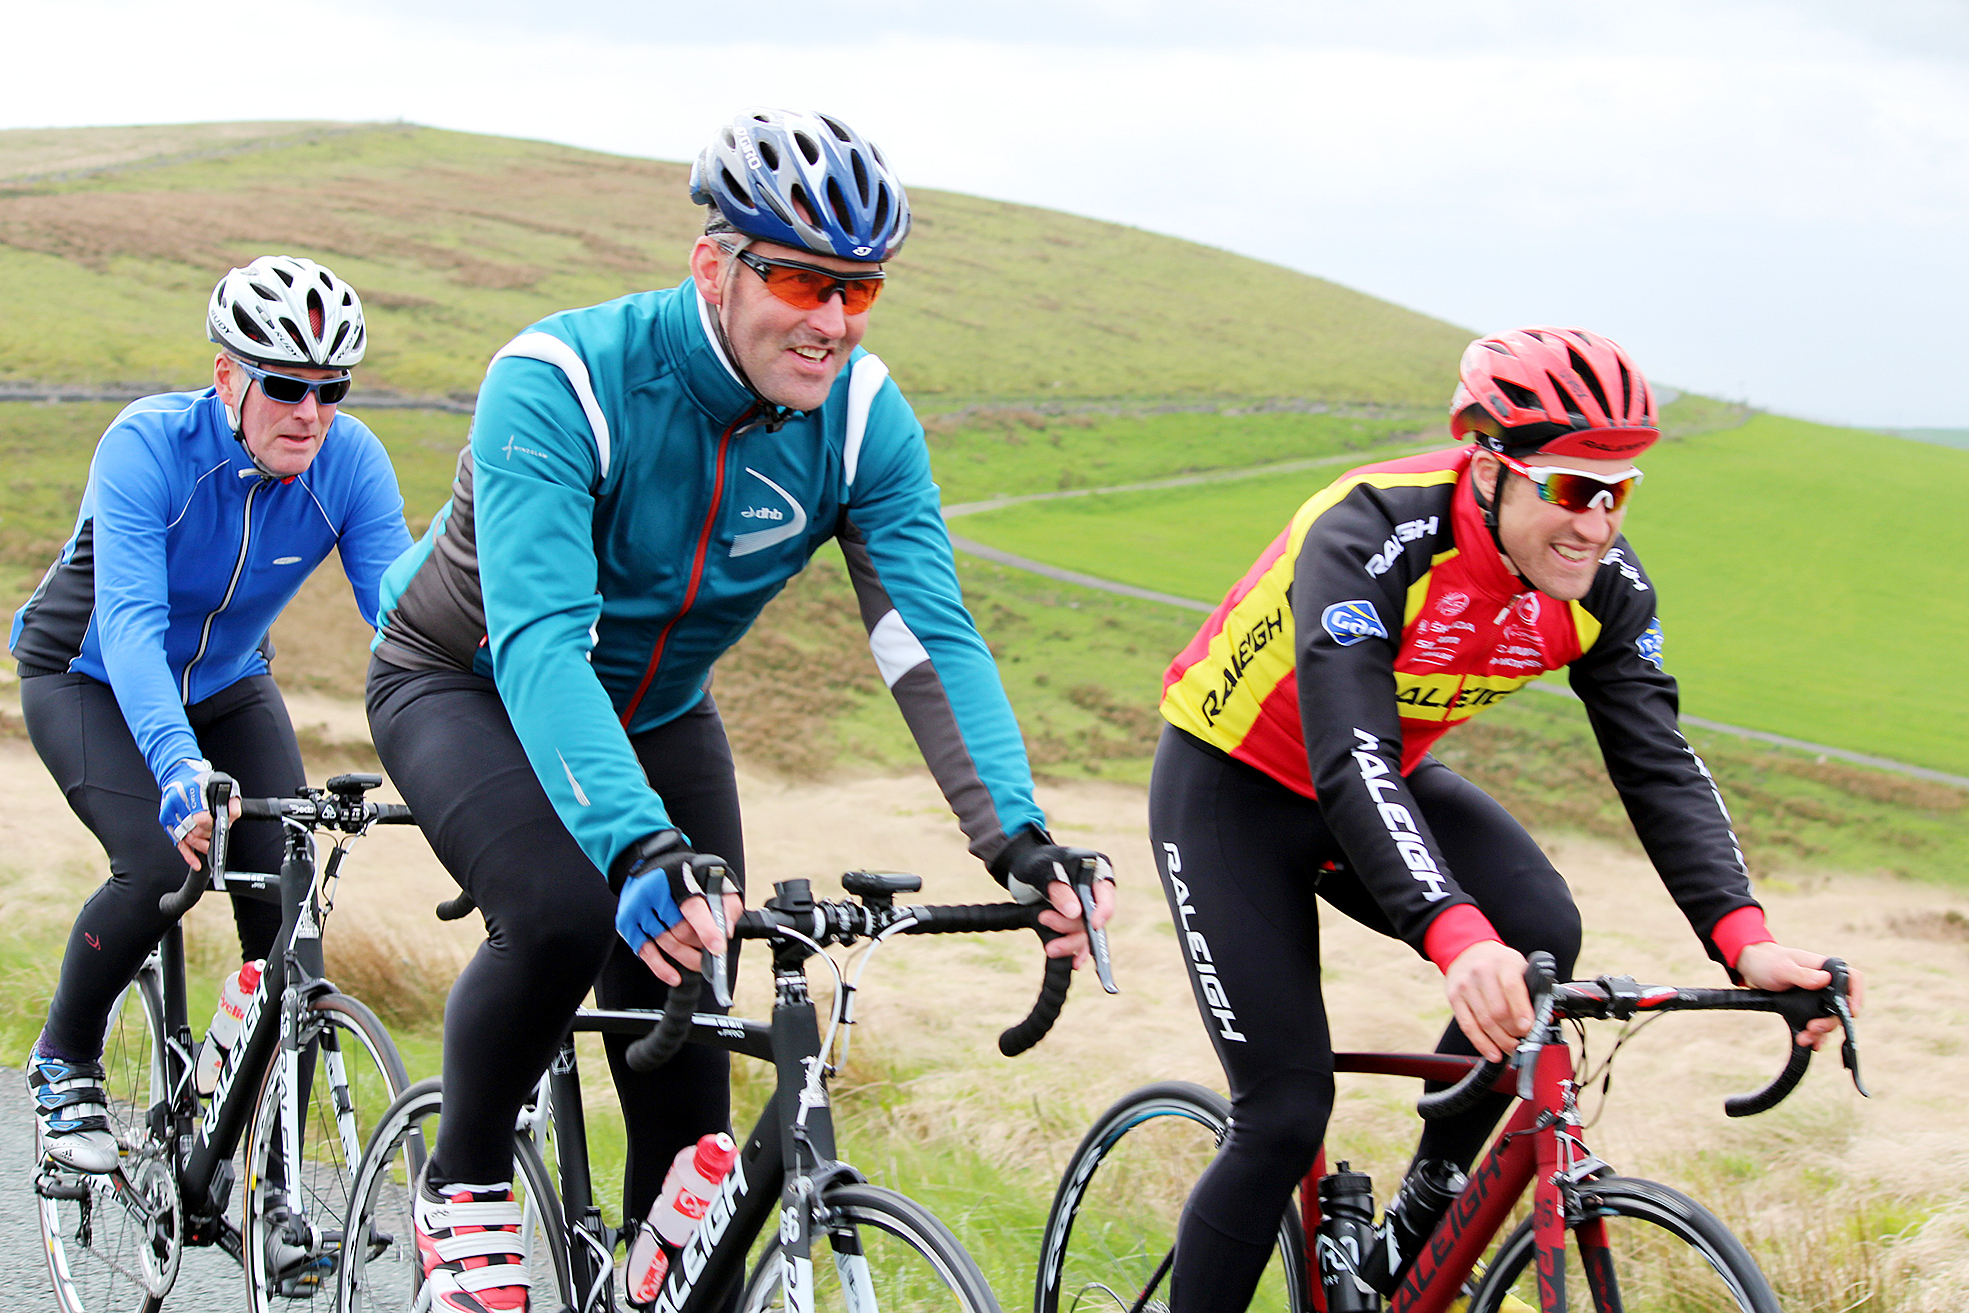 Ian Wilkinson, in red, has a go at the Reg Harris Cyclosportive course